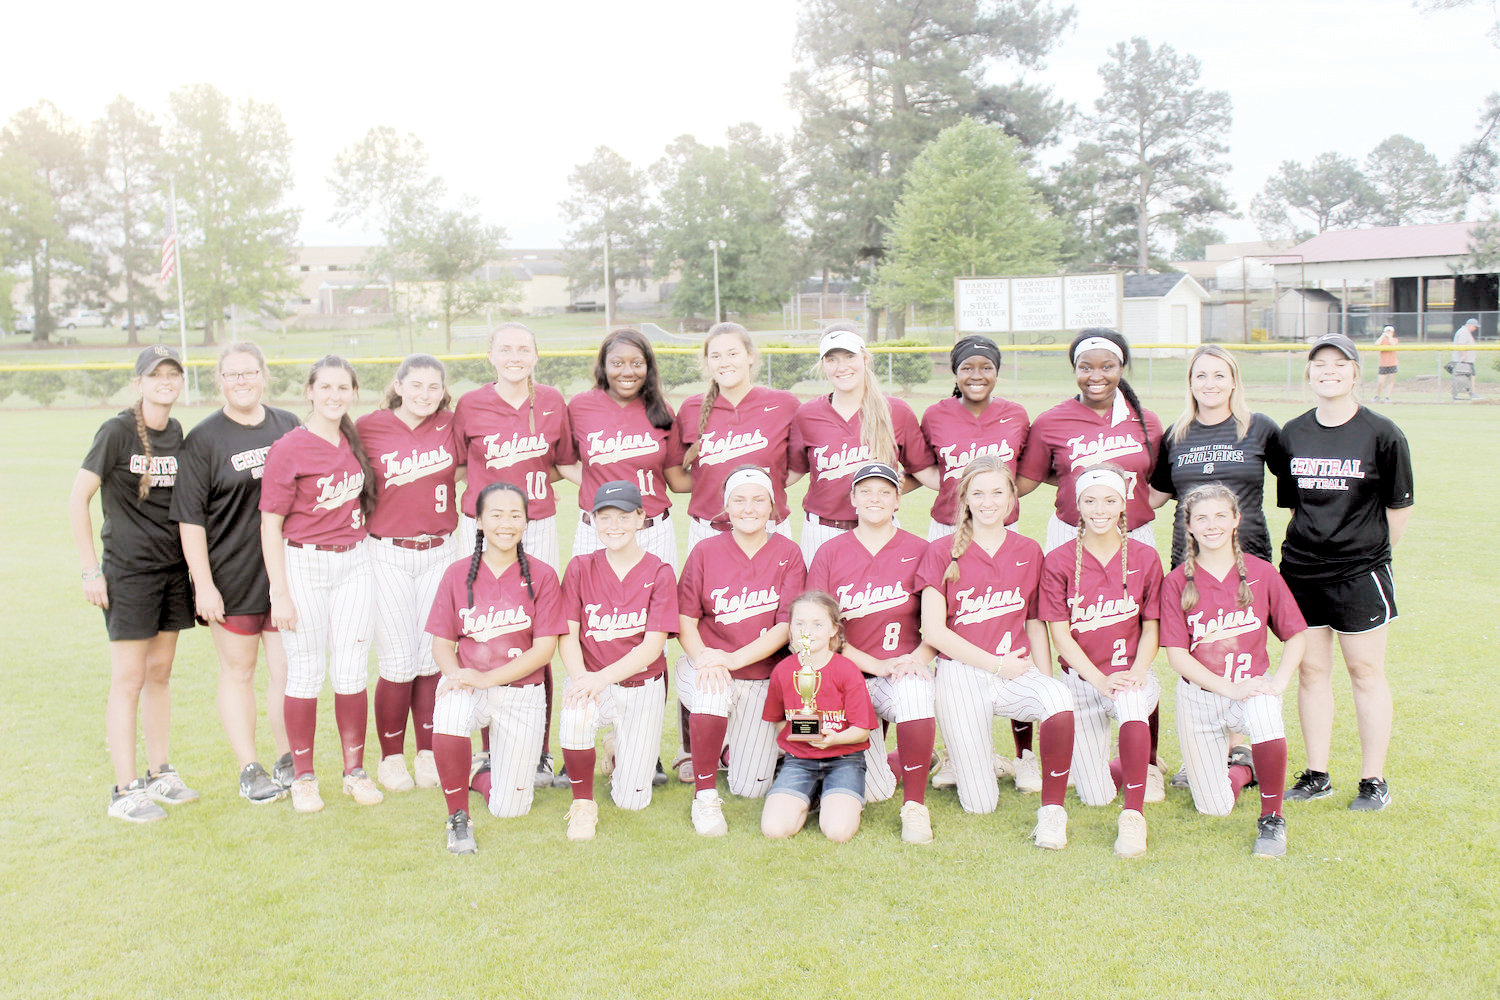 Harnett Central's softball team gathers after winning the Tri-County Conference Tournament Championship. Kneeling, from left, are Ella Prince, Mikaela Goss, Shelbie Gill, Emily White, Lauryn Waddell, Kylee Frailey and Laurie Blackwell. On the back row, from left, are assistants Ashlee Crewe and Olivia Scarborough, Fallon Wimberly, Jessie Dillon, Lyndsey Brewer, Marcayla Jones, Kolby Medlin, Ansley Lee, Ivanna Jones, Amaya Bell, coach Chelsey Cabe and assistant Morgan Hall. In front, with the trophy, is bat girl Leah Brewer.